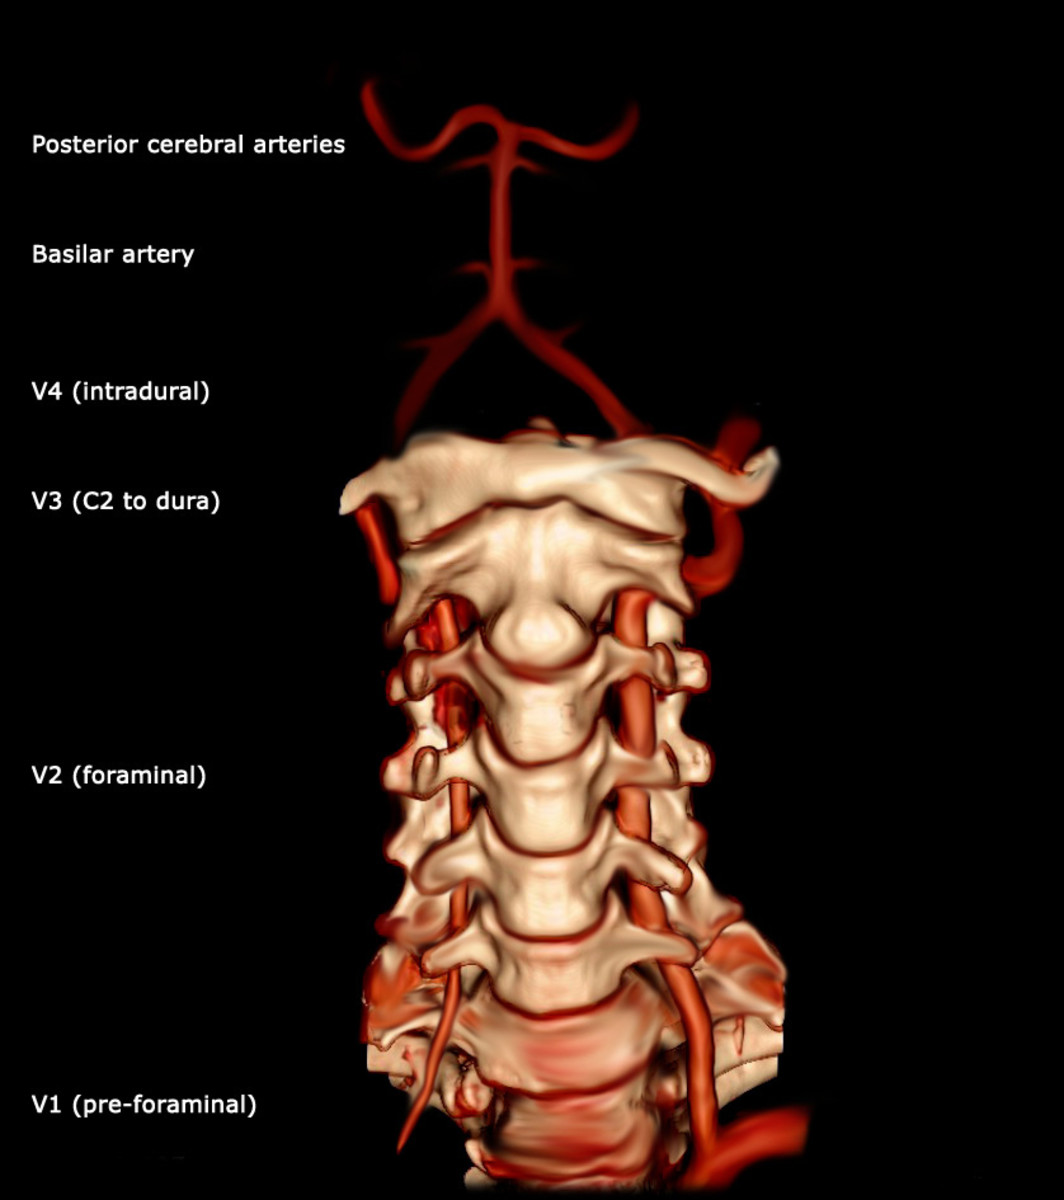 Bilateral Vertebral Arteries. Note anterior fusion to form single Basilar Artery